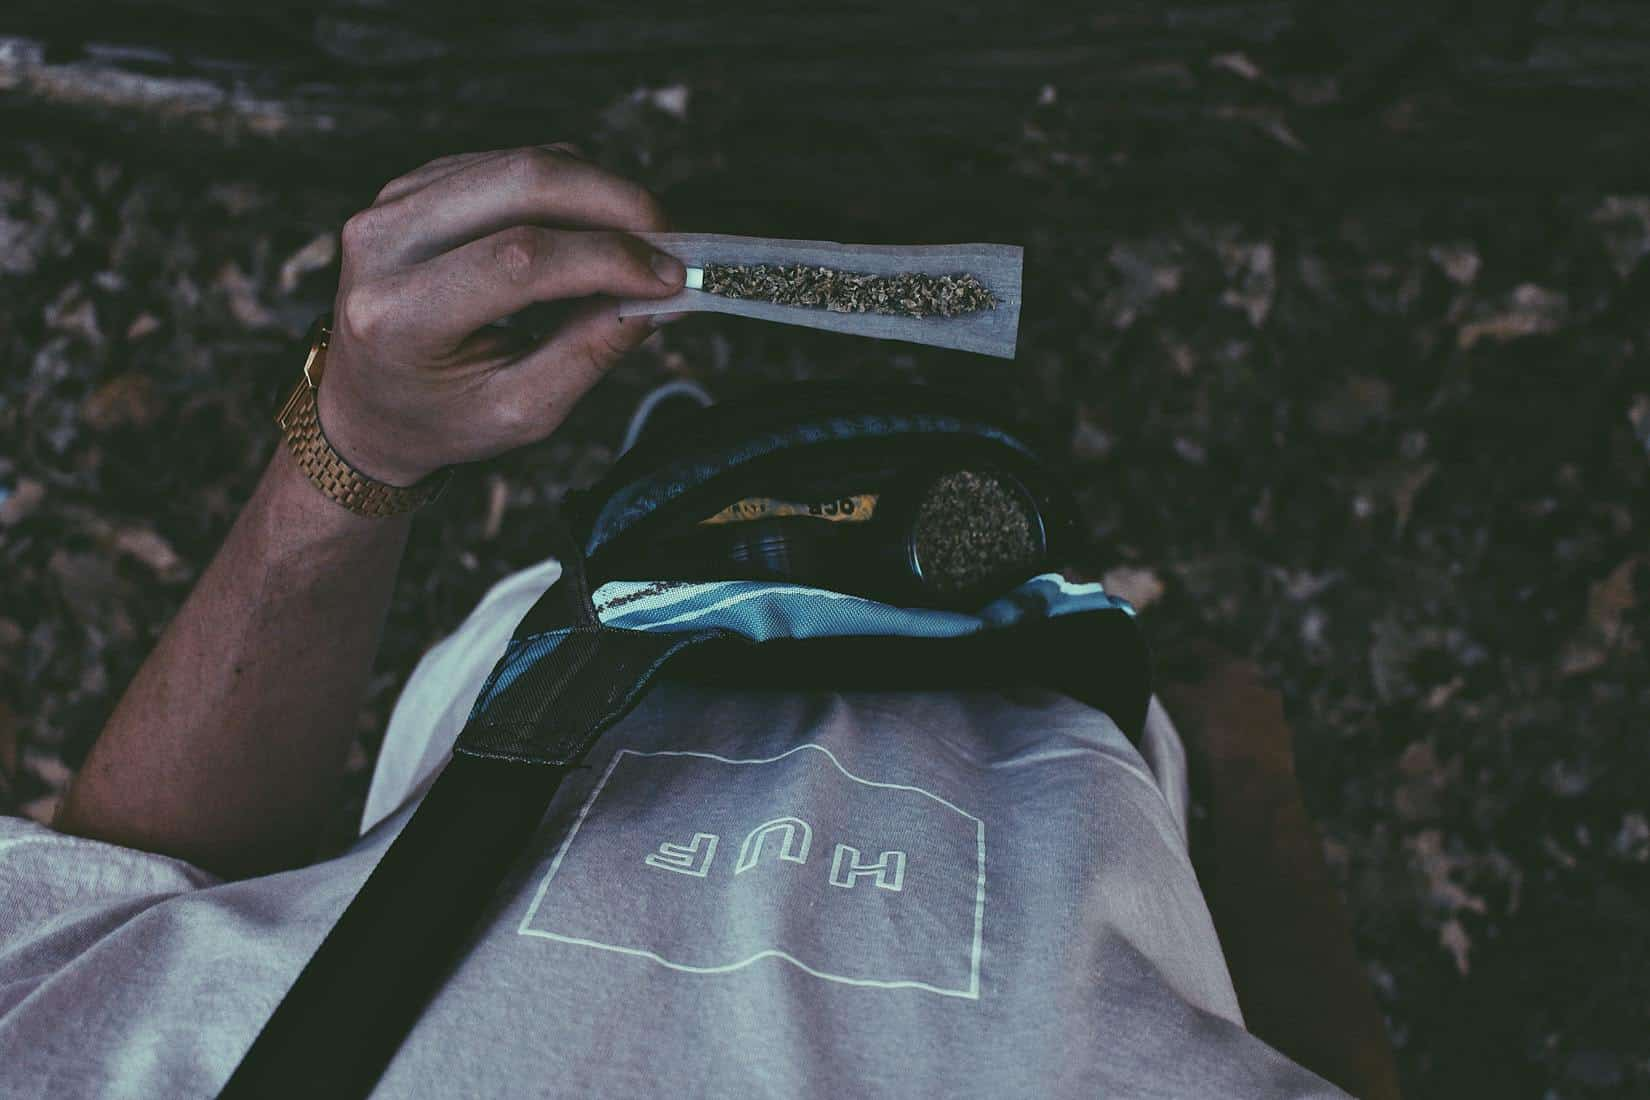 The Best Smell-Proof Bags For Your Marijuana. Man holding a blunt.